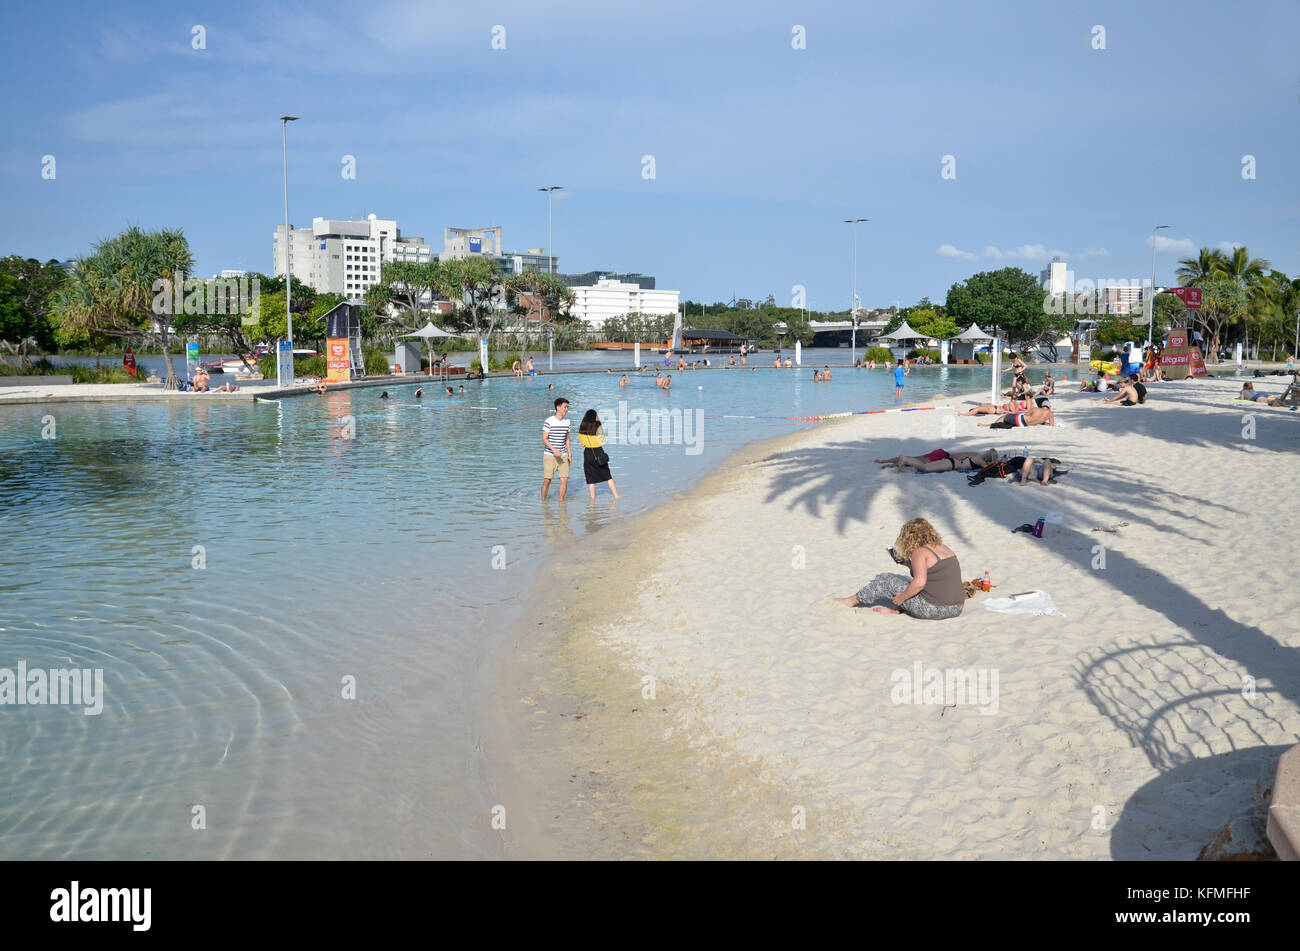 Streets Beach, an urban beach and swimming area on the South bank of Brisbane River in Brisbane, Queensland, Australia - Stock Image